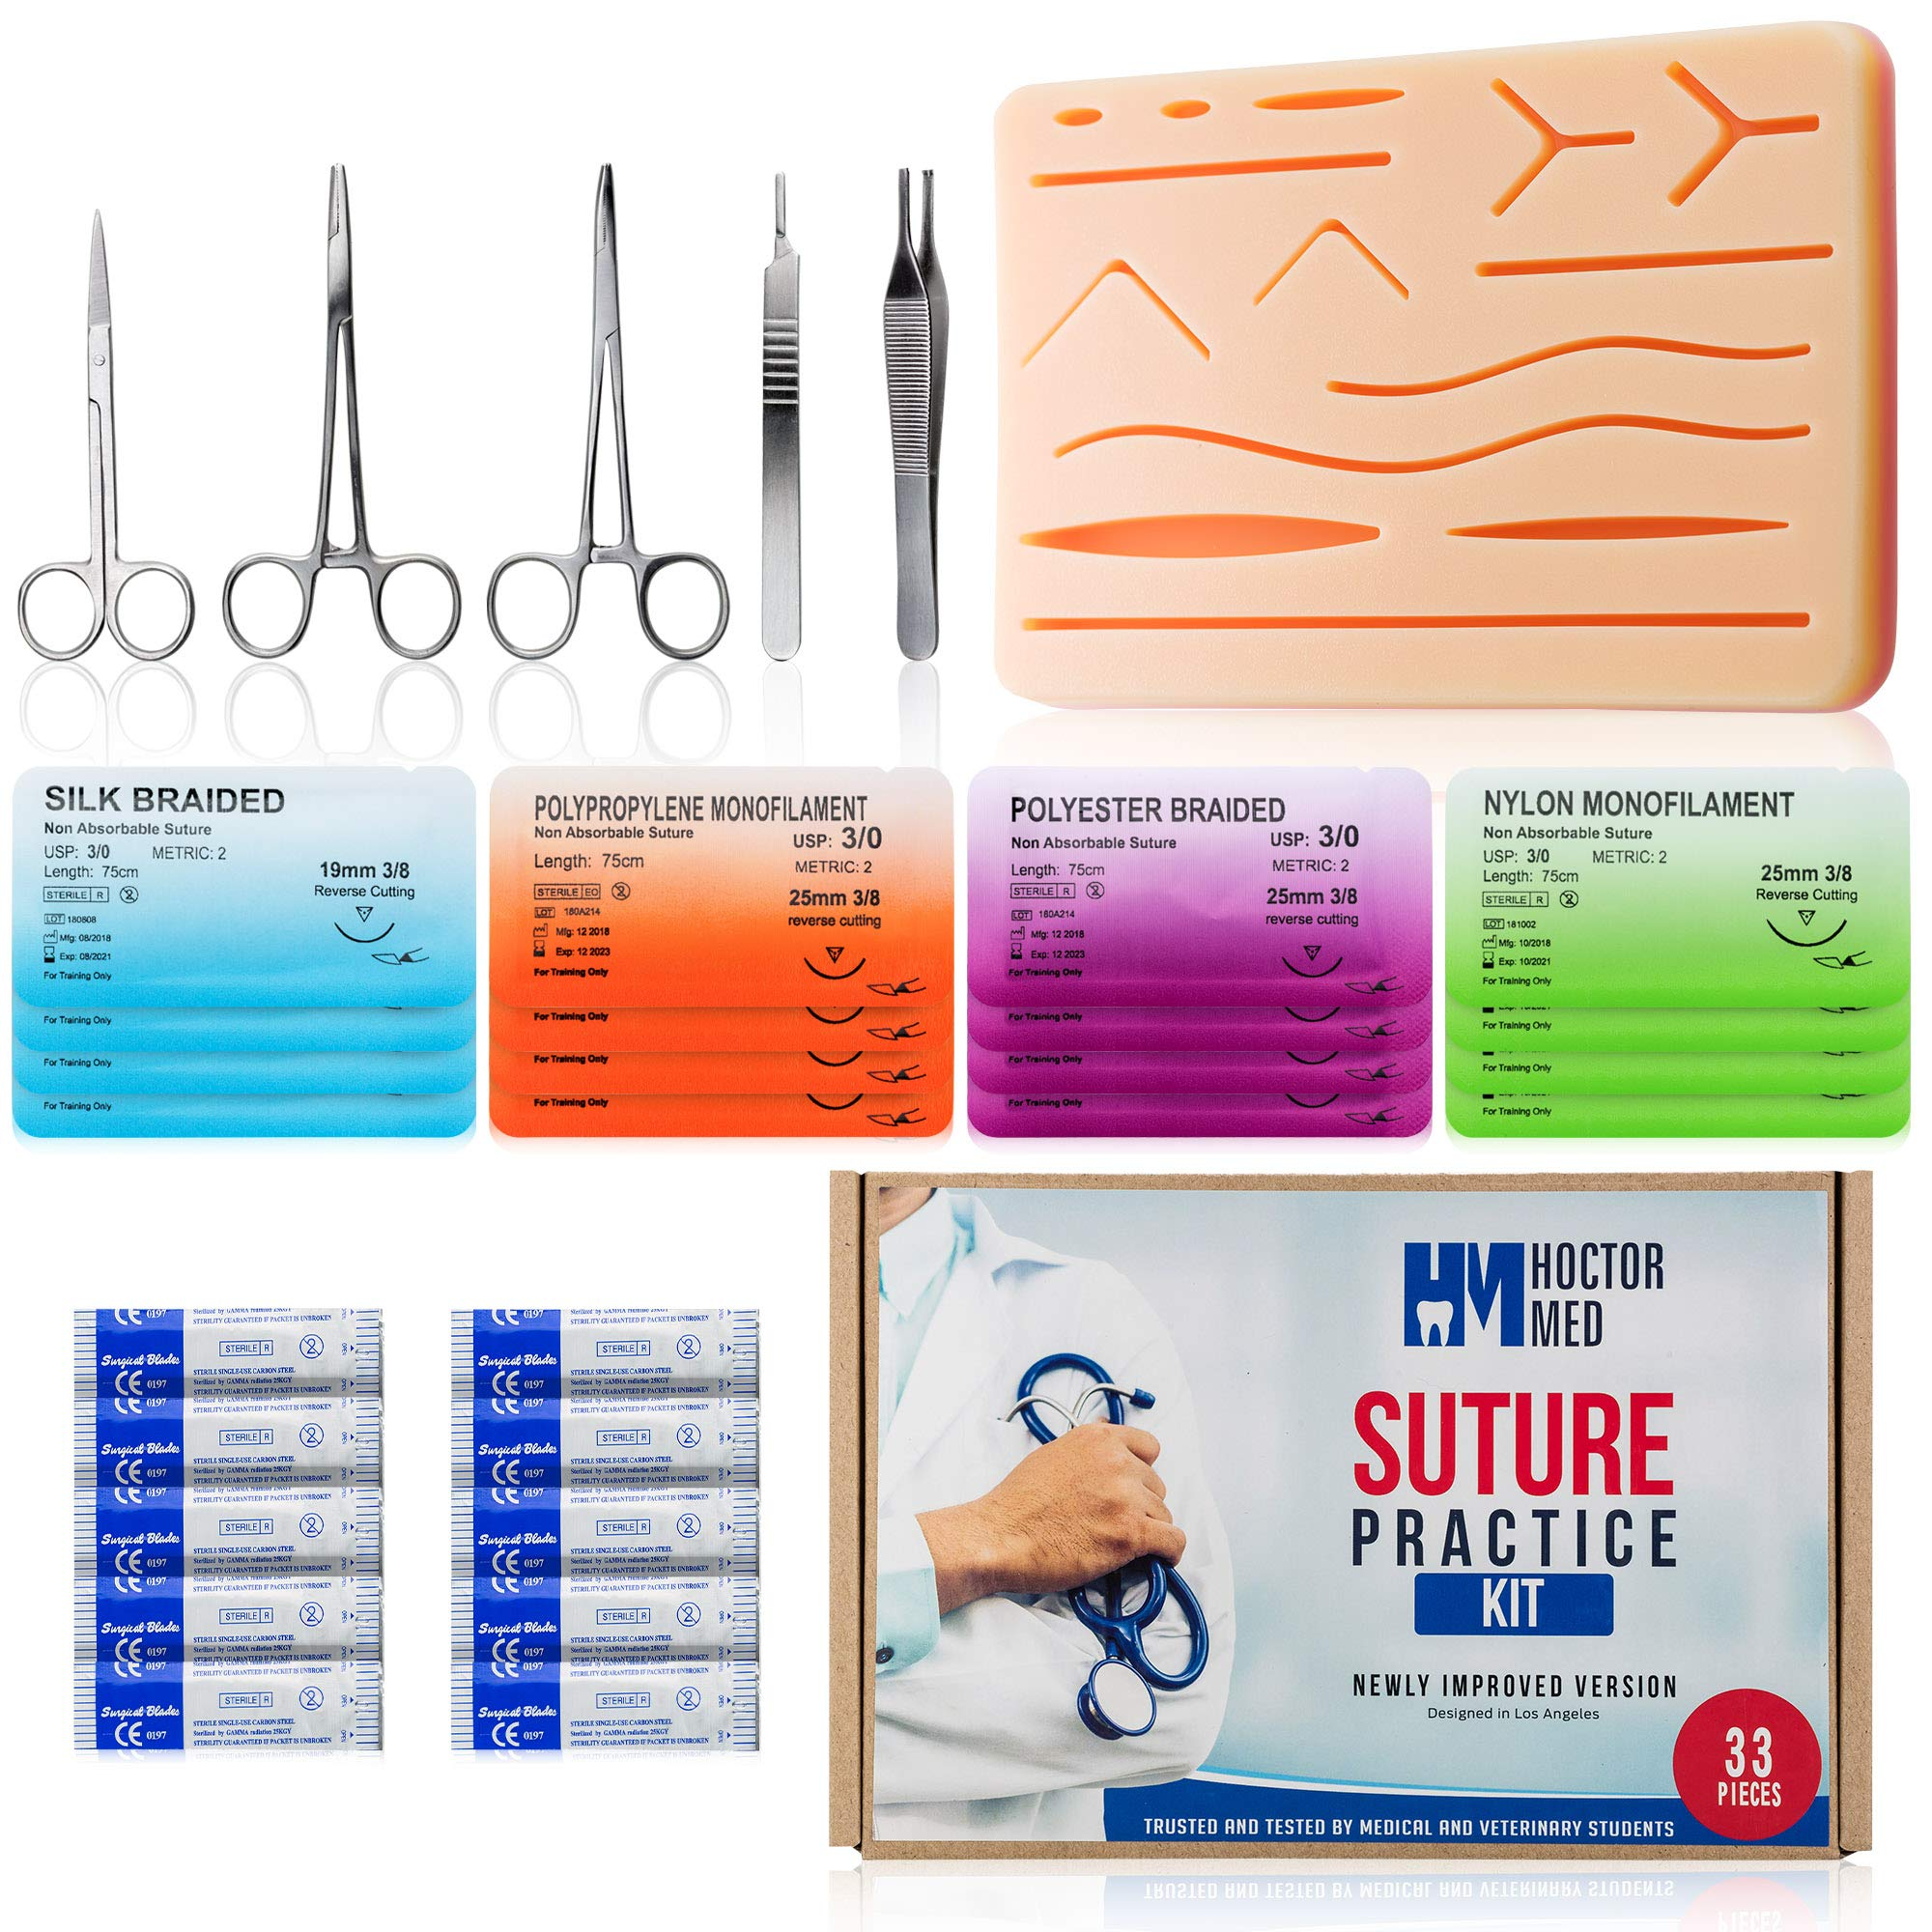 Suture Practice Kit for Suturing Training: Advanced 30 Piece Suture Kit with Large Pre-Cut Silicone Wound Suture Pad, Suturing Tools, 4 Types Threads & Storage Case - Medical Training Surgical Sutures by Hoctor Med